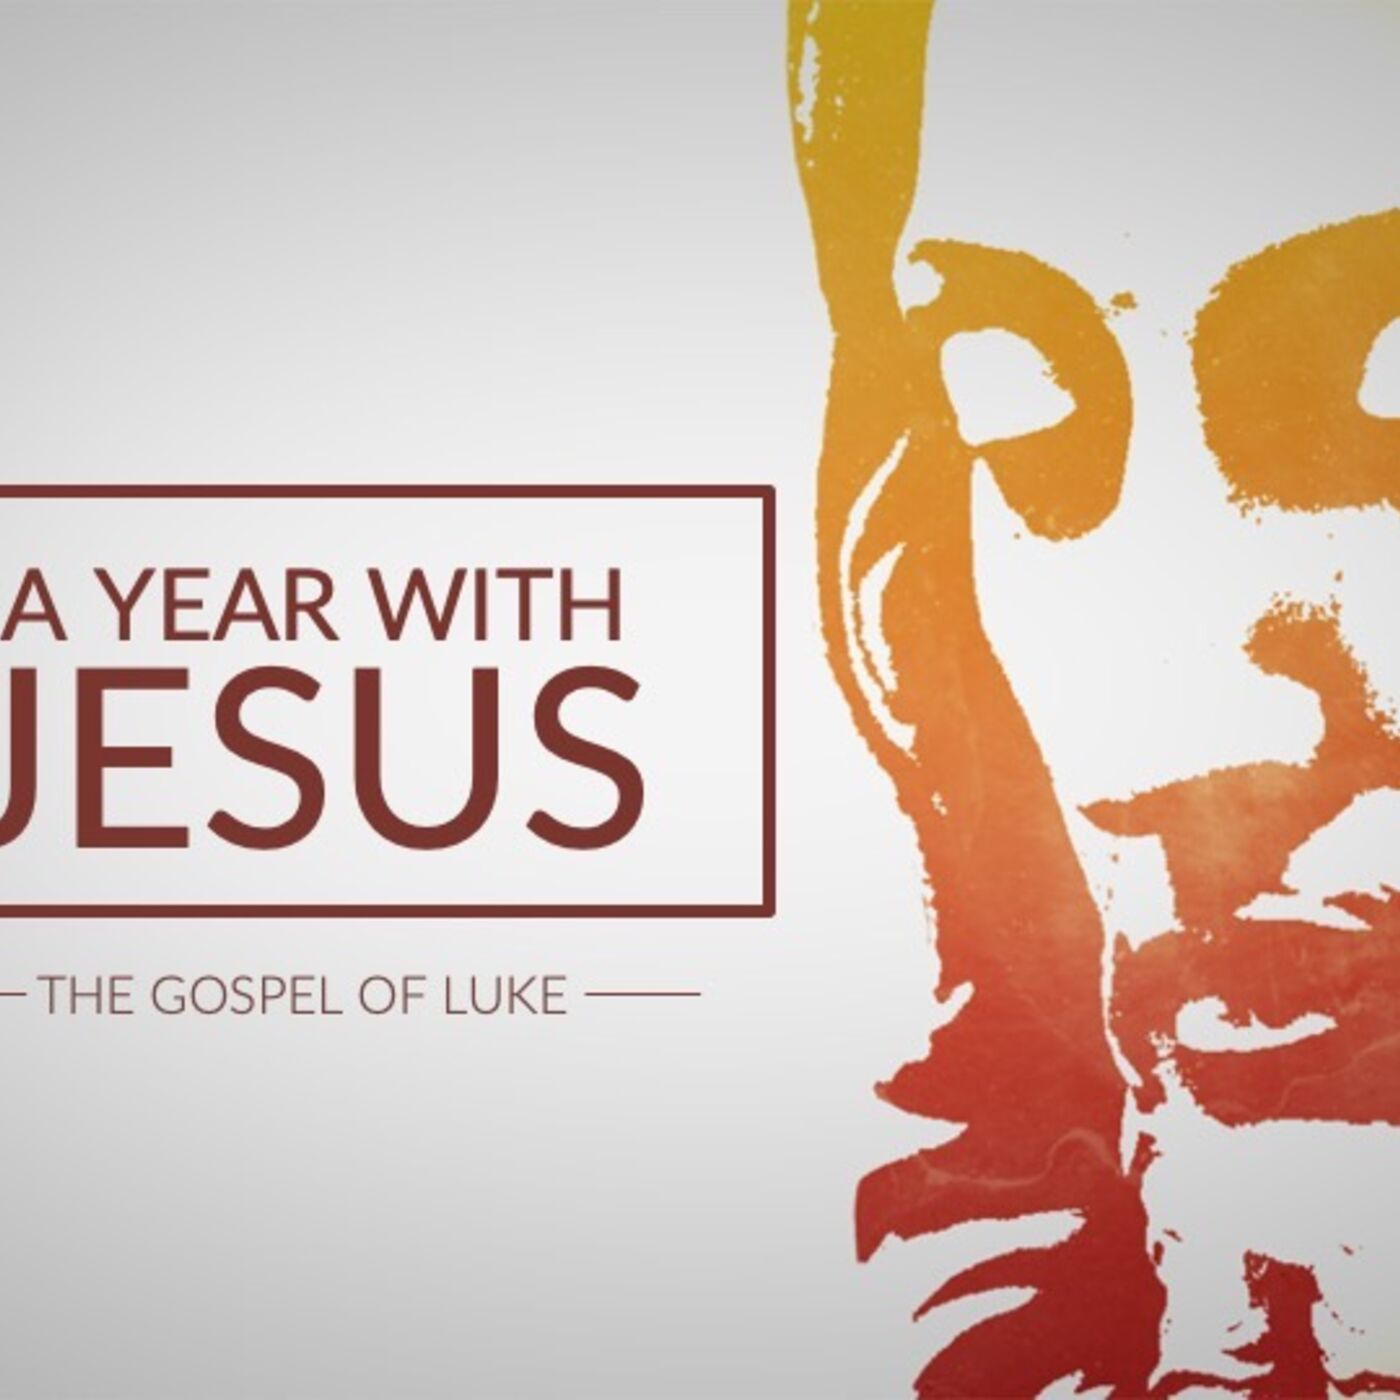 A Year With Jesus: Repentance Bear Real Fruit (Luke 13:10-17)